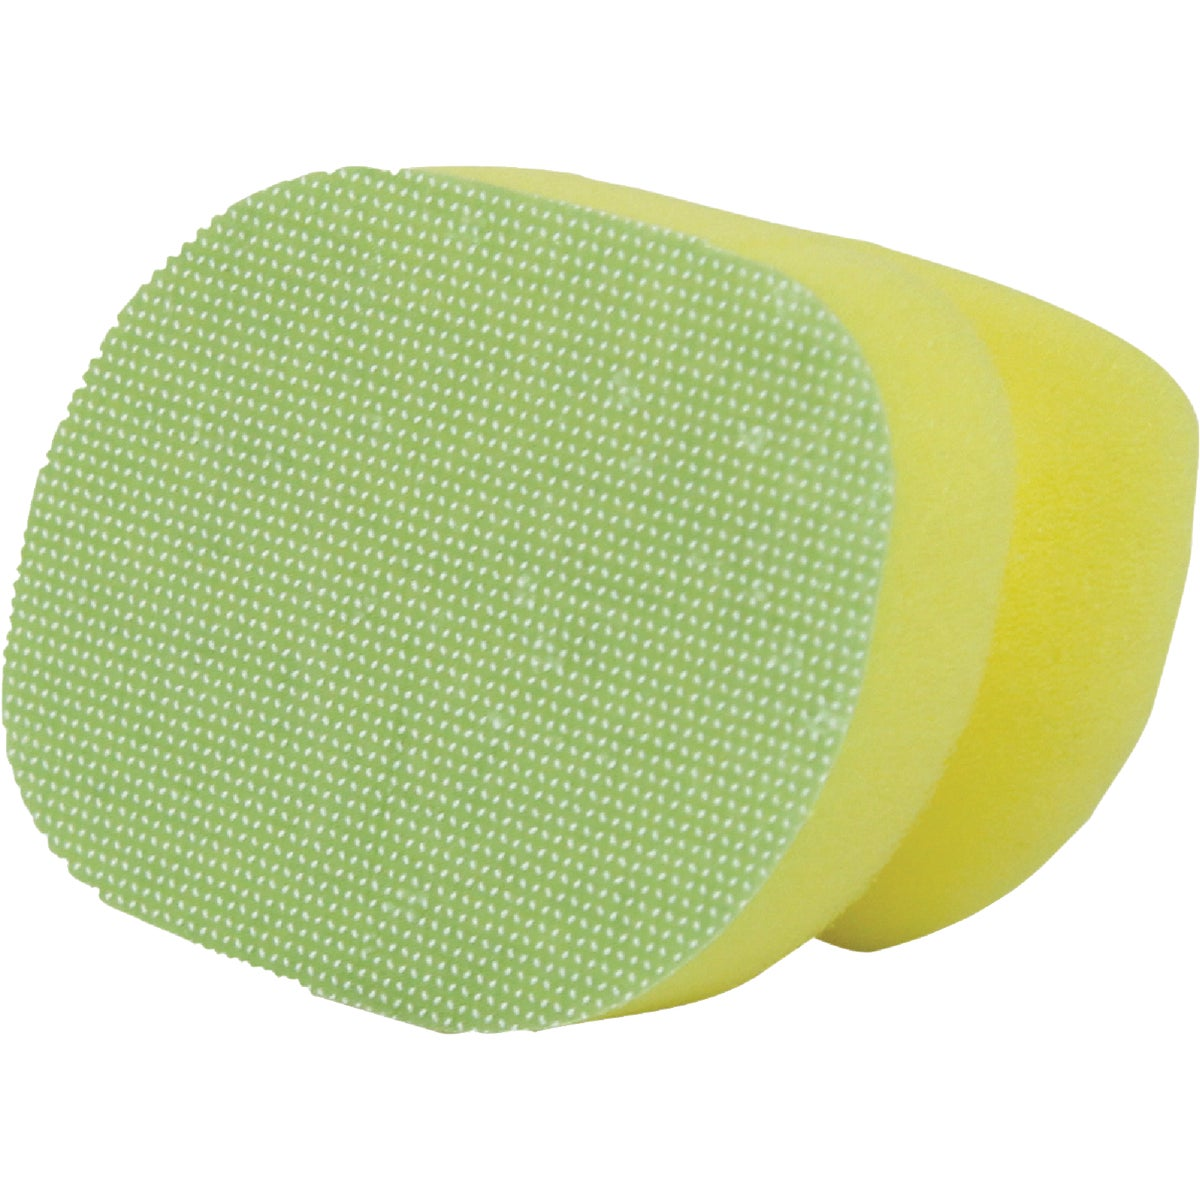 SCOURING PADS - 135840 by F H P-lp